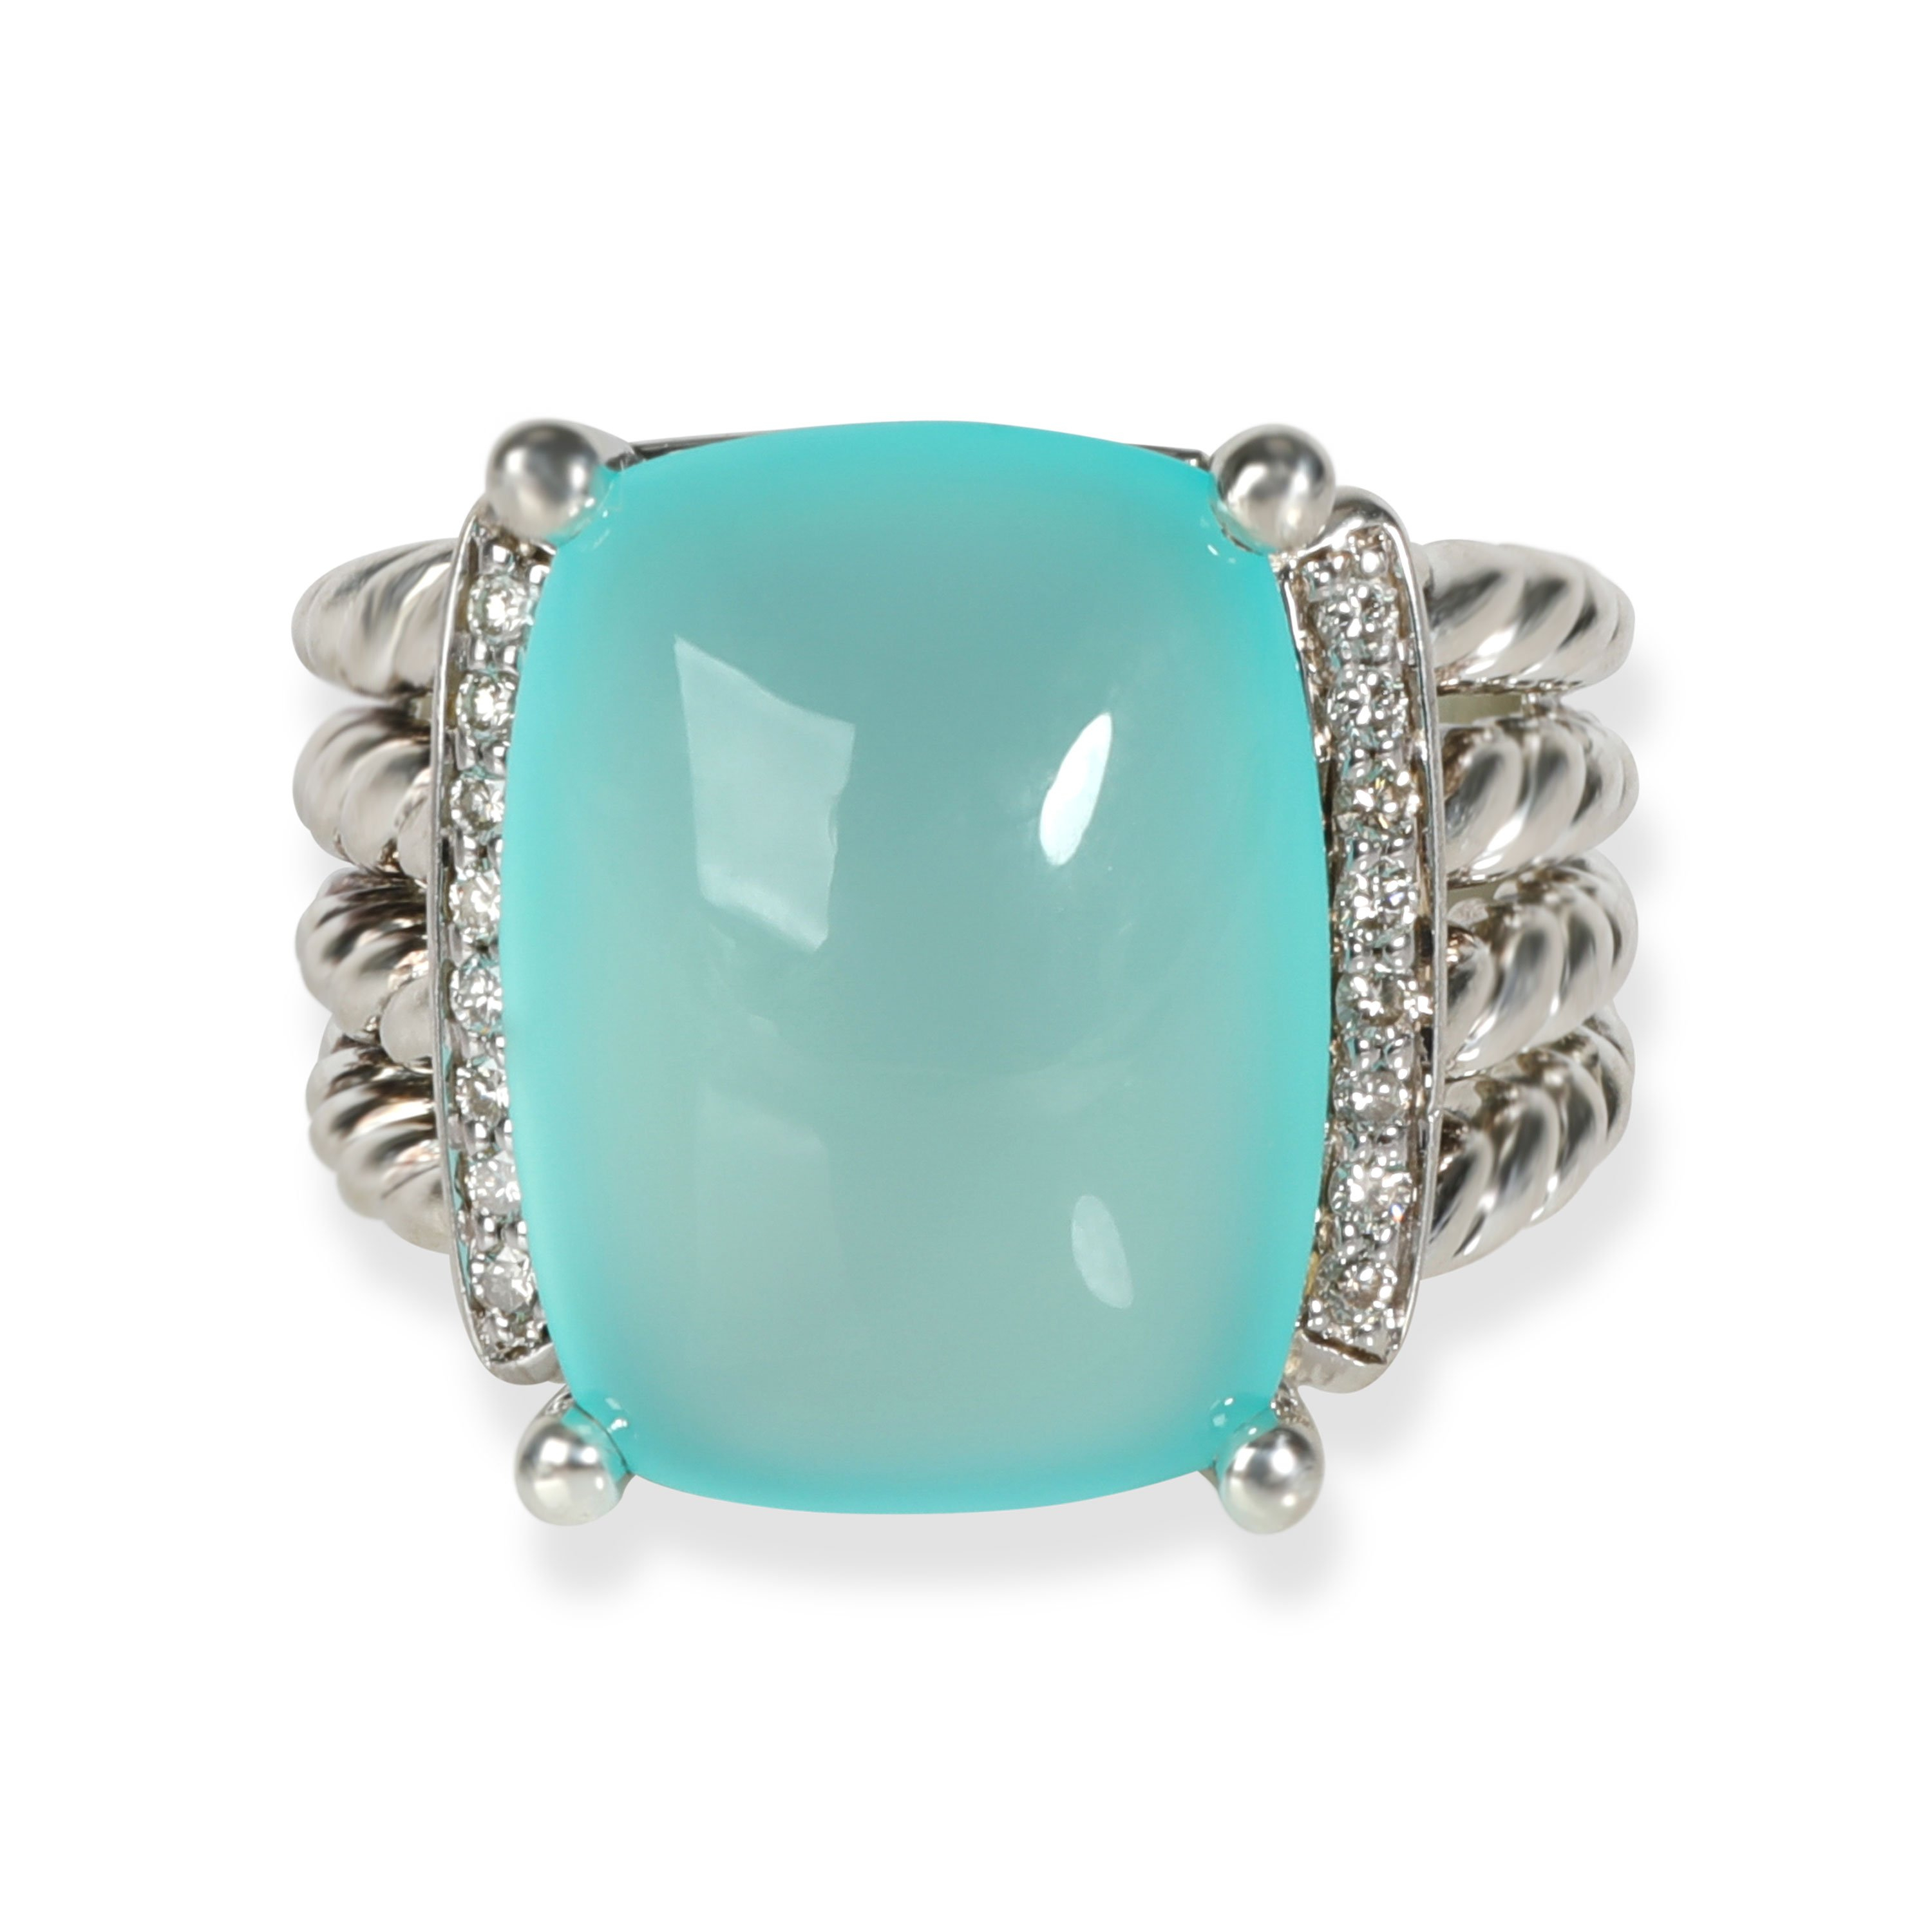 Vintage Kim statement ring in the original bag Silver with a blue Cabochon.